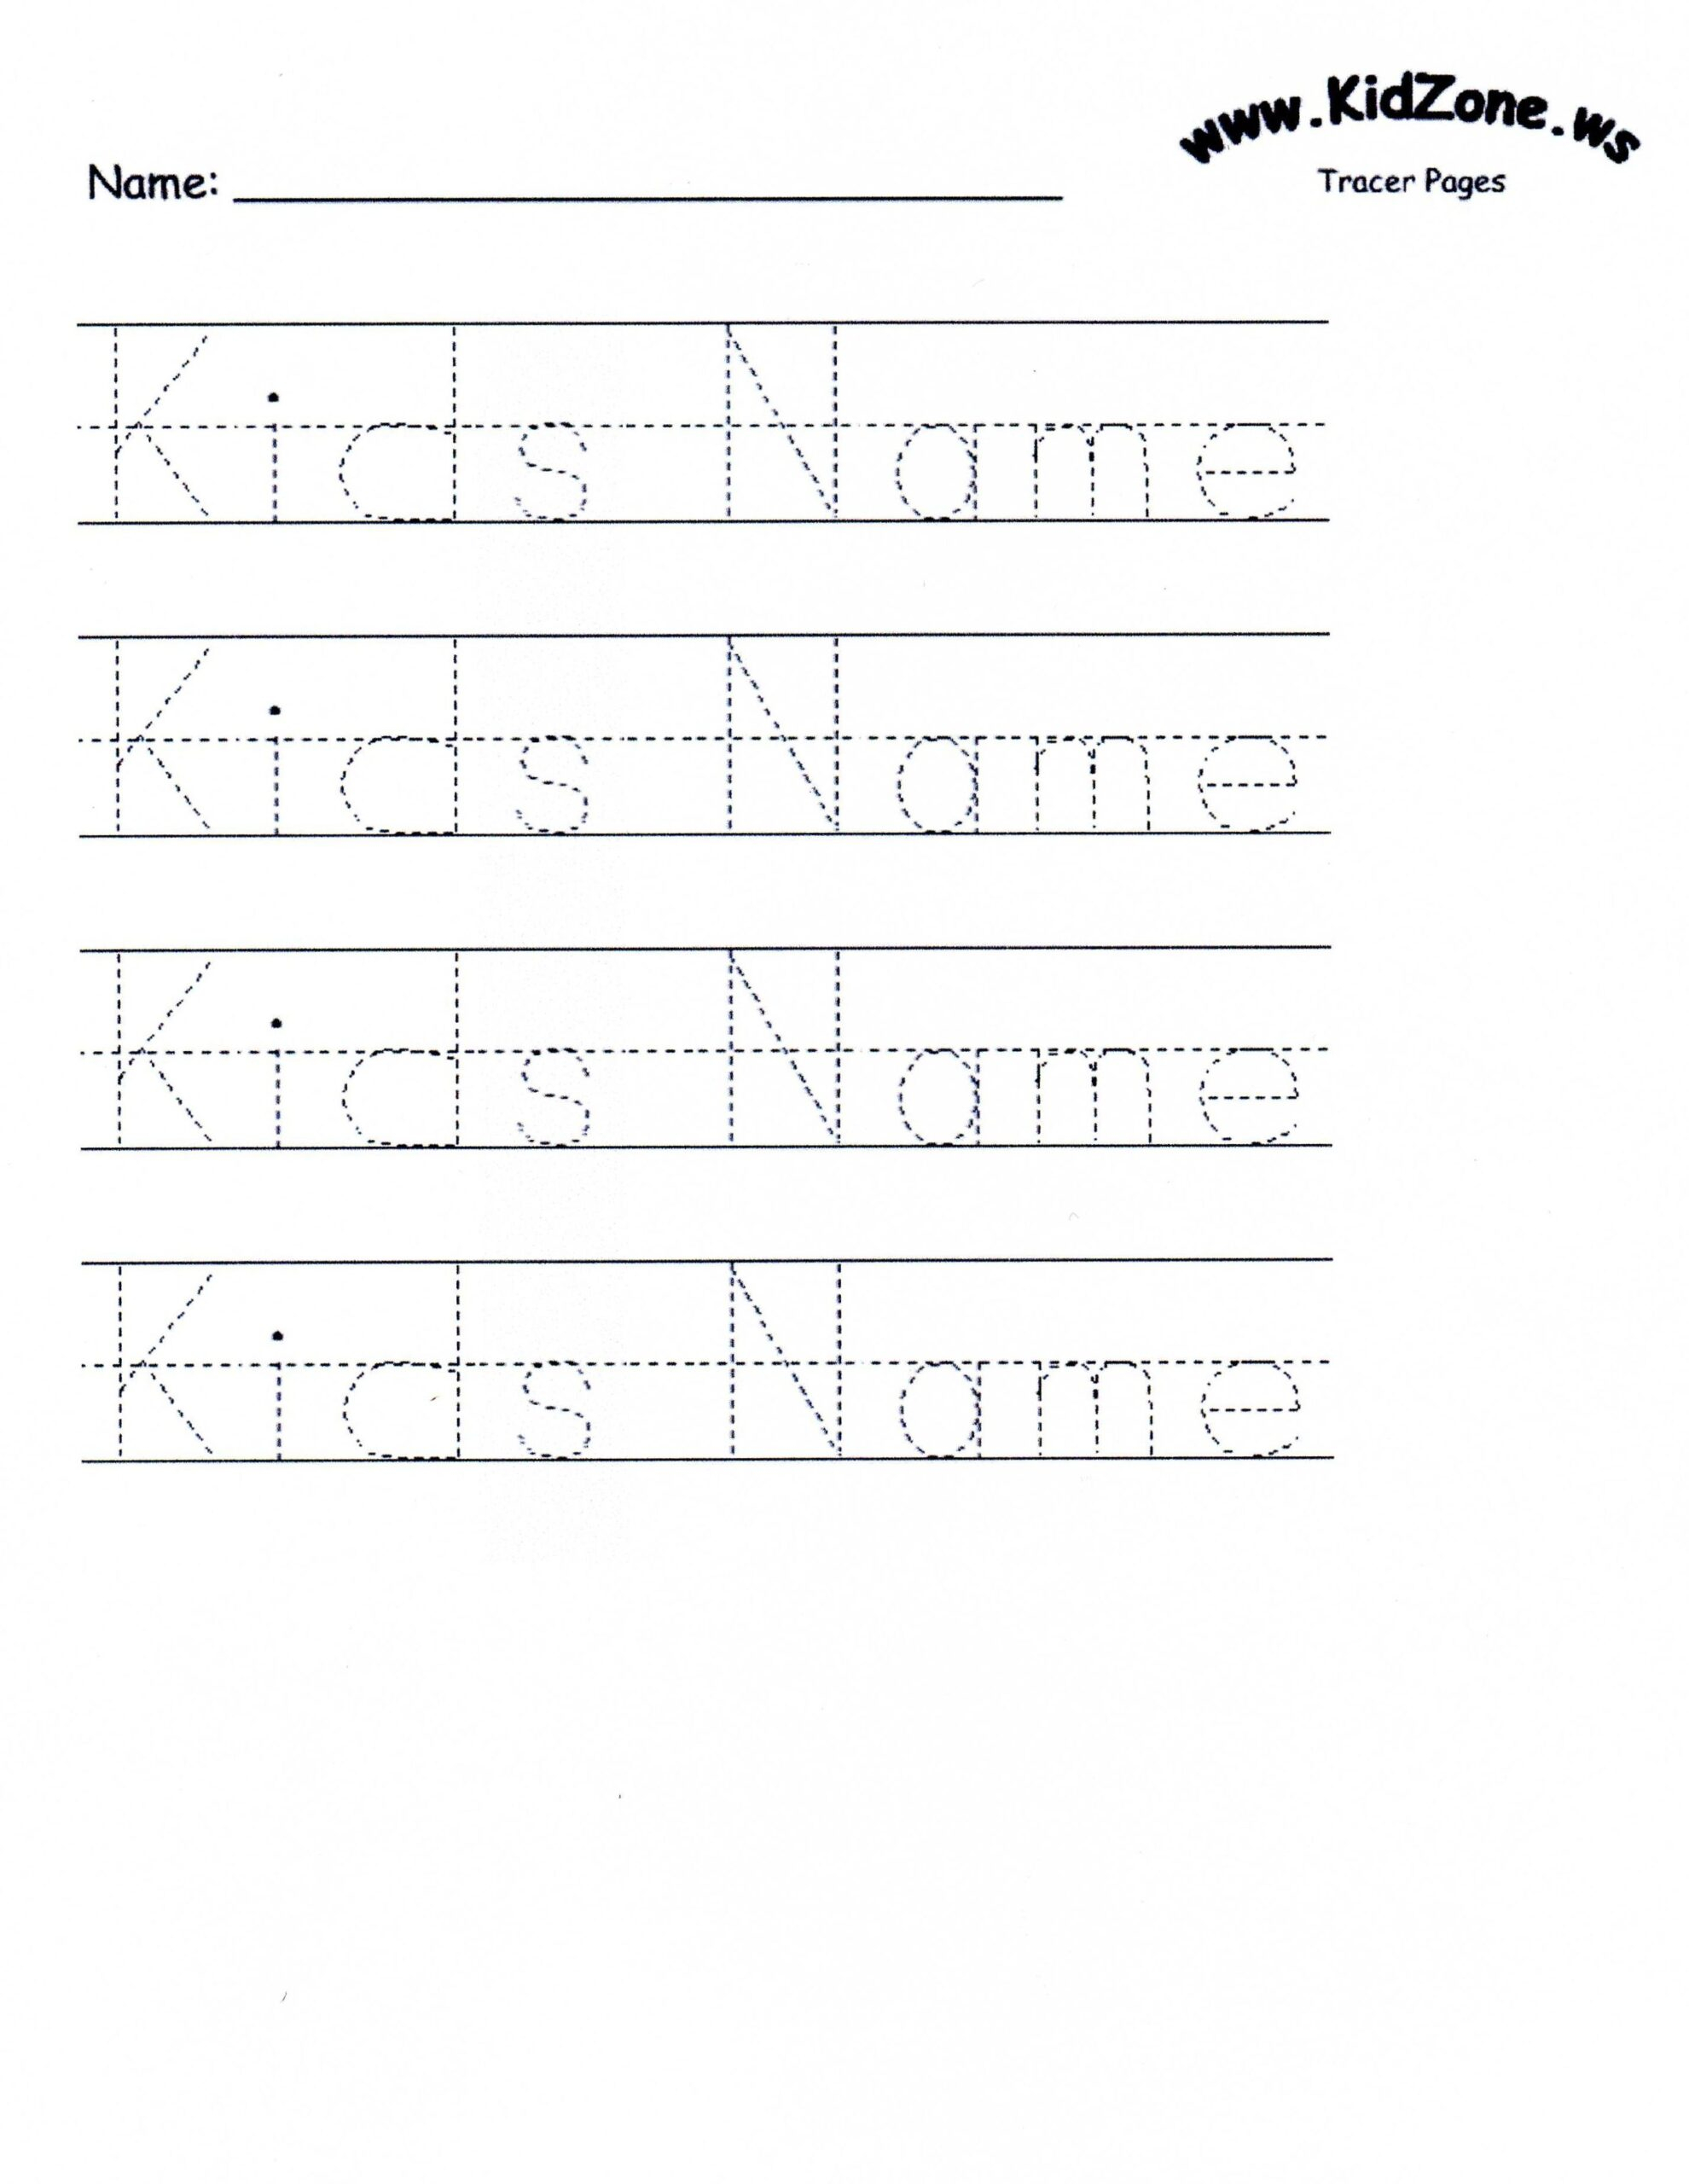 Worksheets : Customizable Printable Letter Pages Name within Tracing Name Ryan